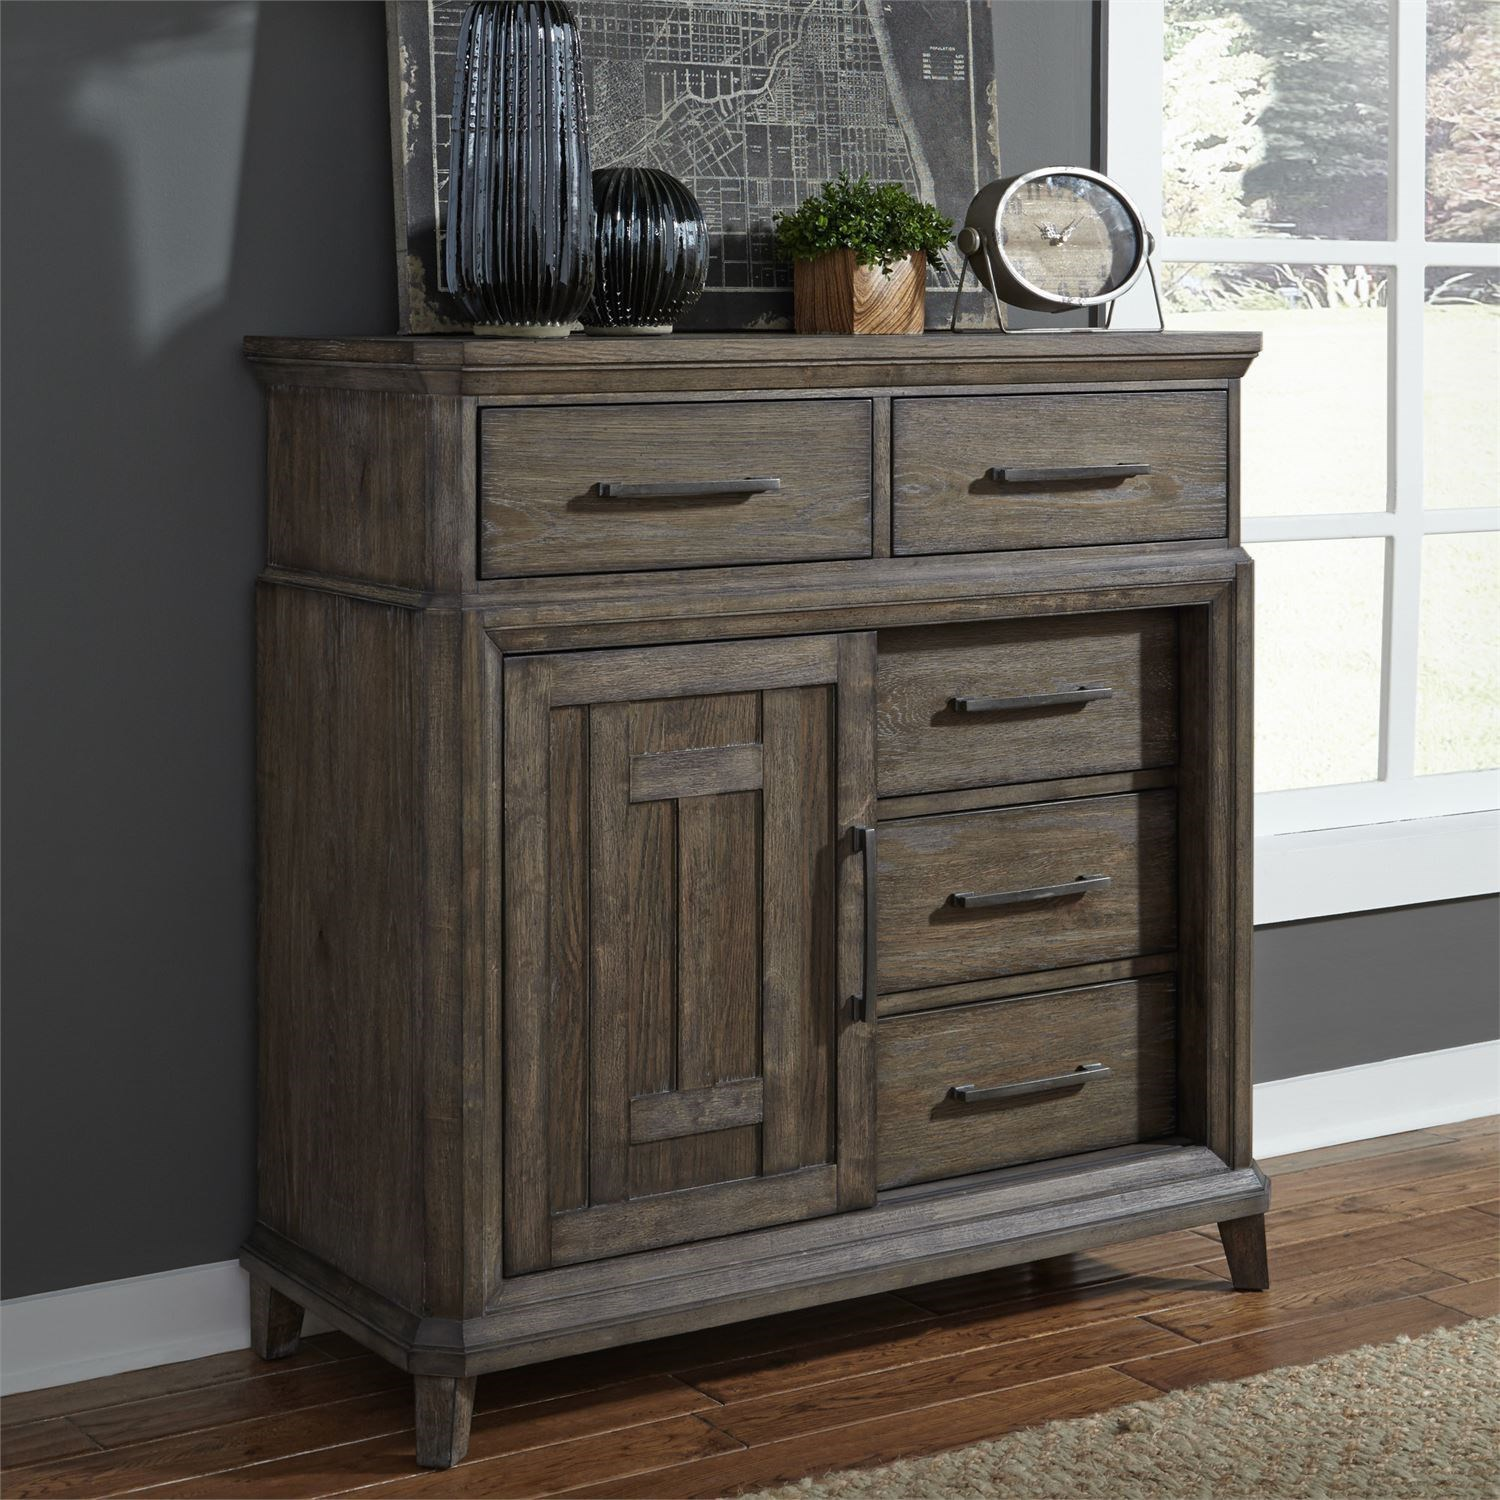 Artisan Prairie 5 Drawer Chest with Doors by Liberty Furniture at Zak's Home